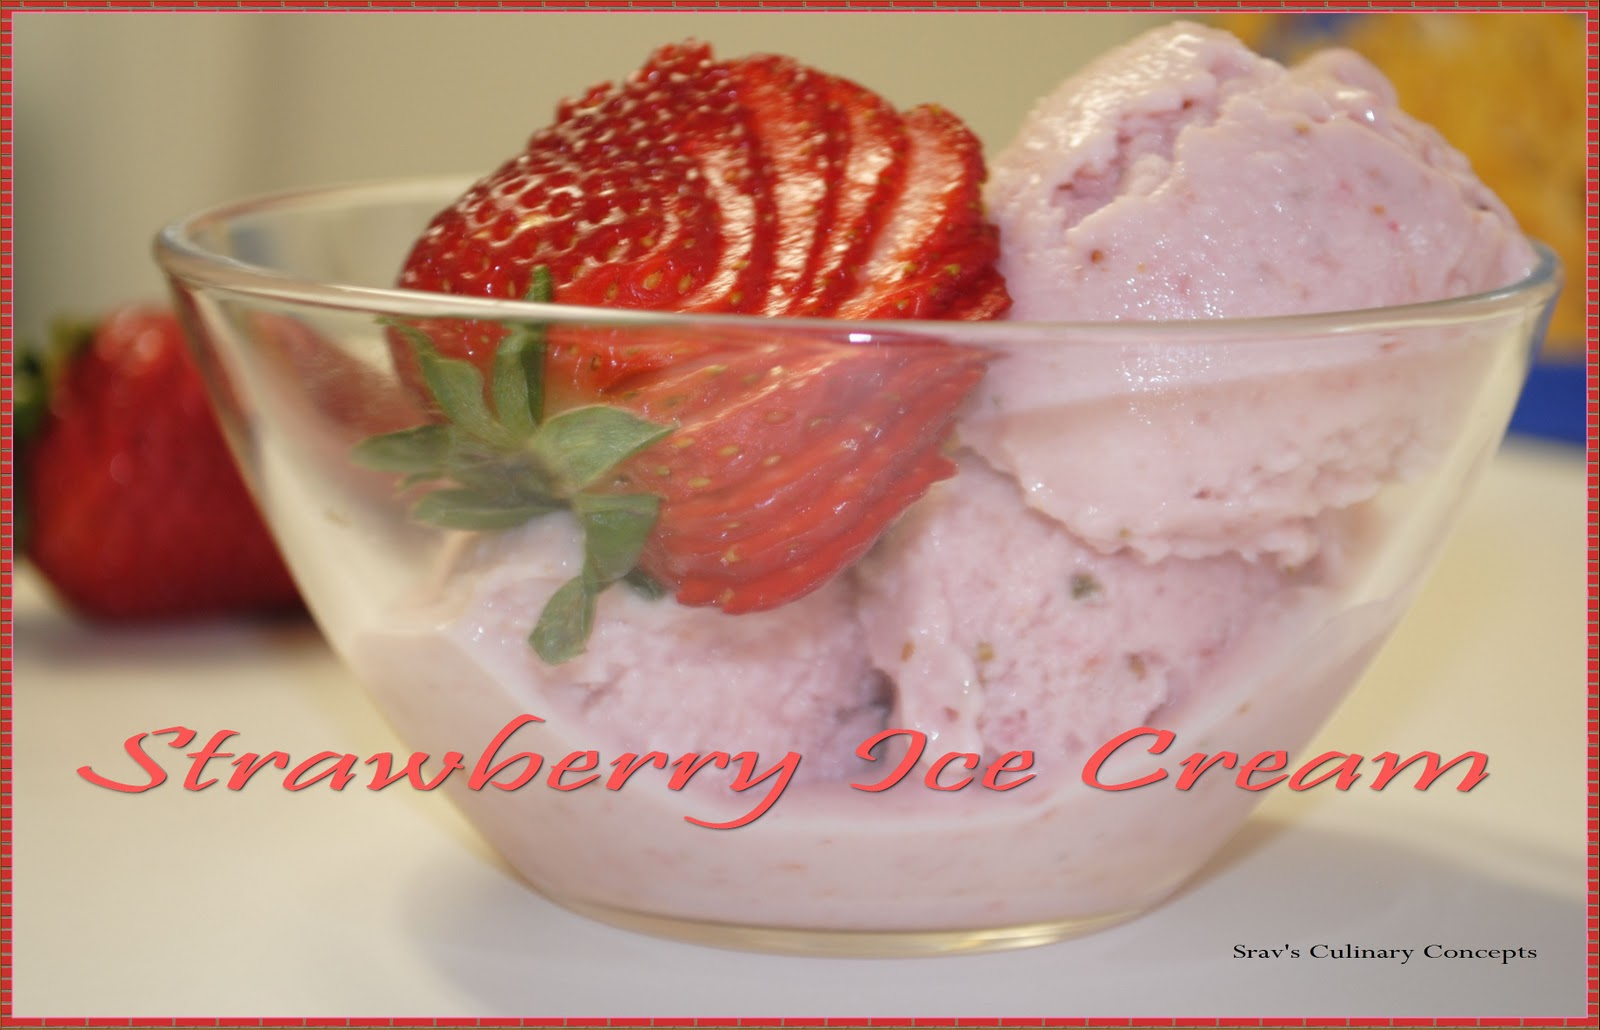 ... Culinary Concepts: Homemade Strawberry Ice Cream With Ricotta Cheese